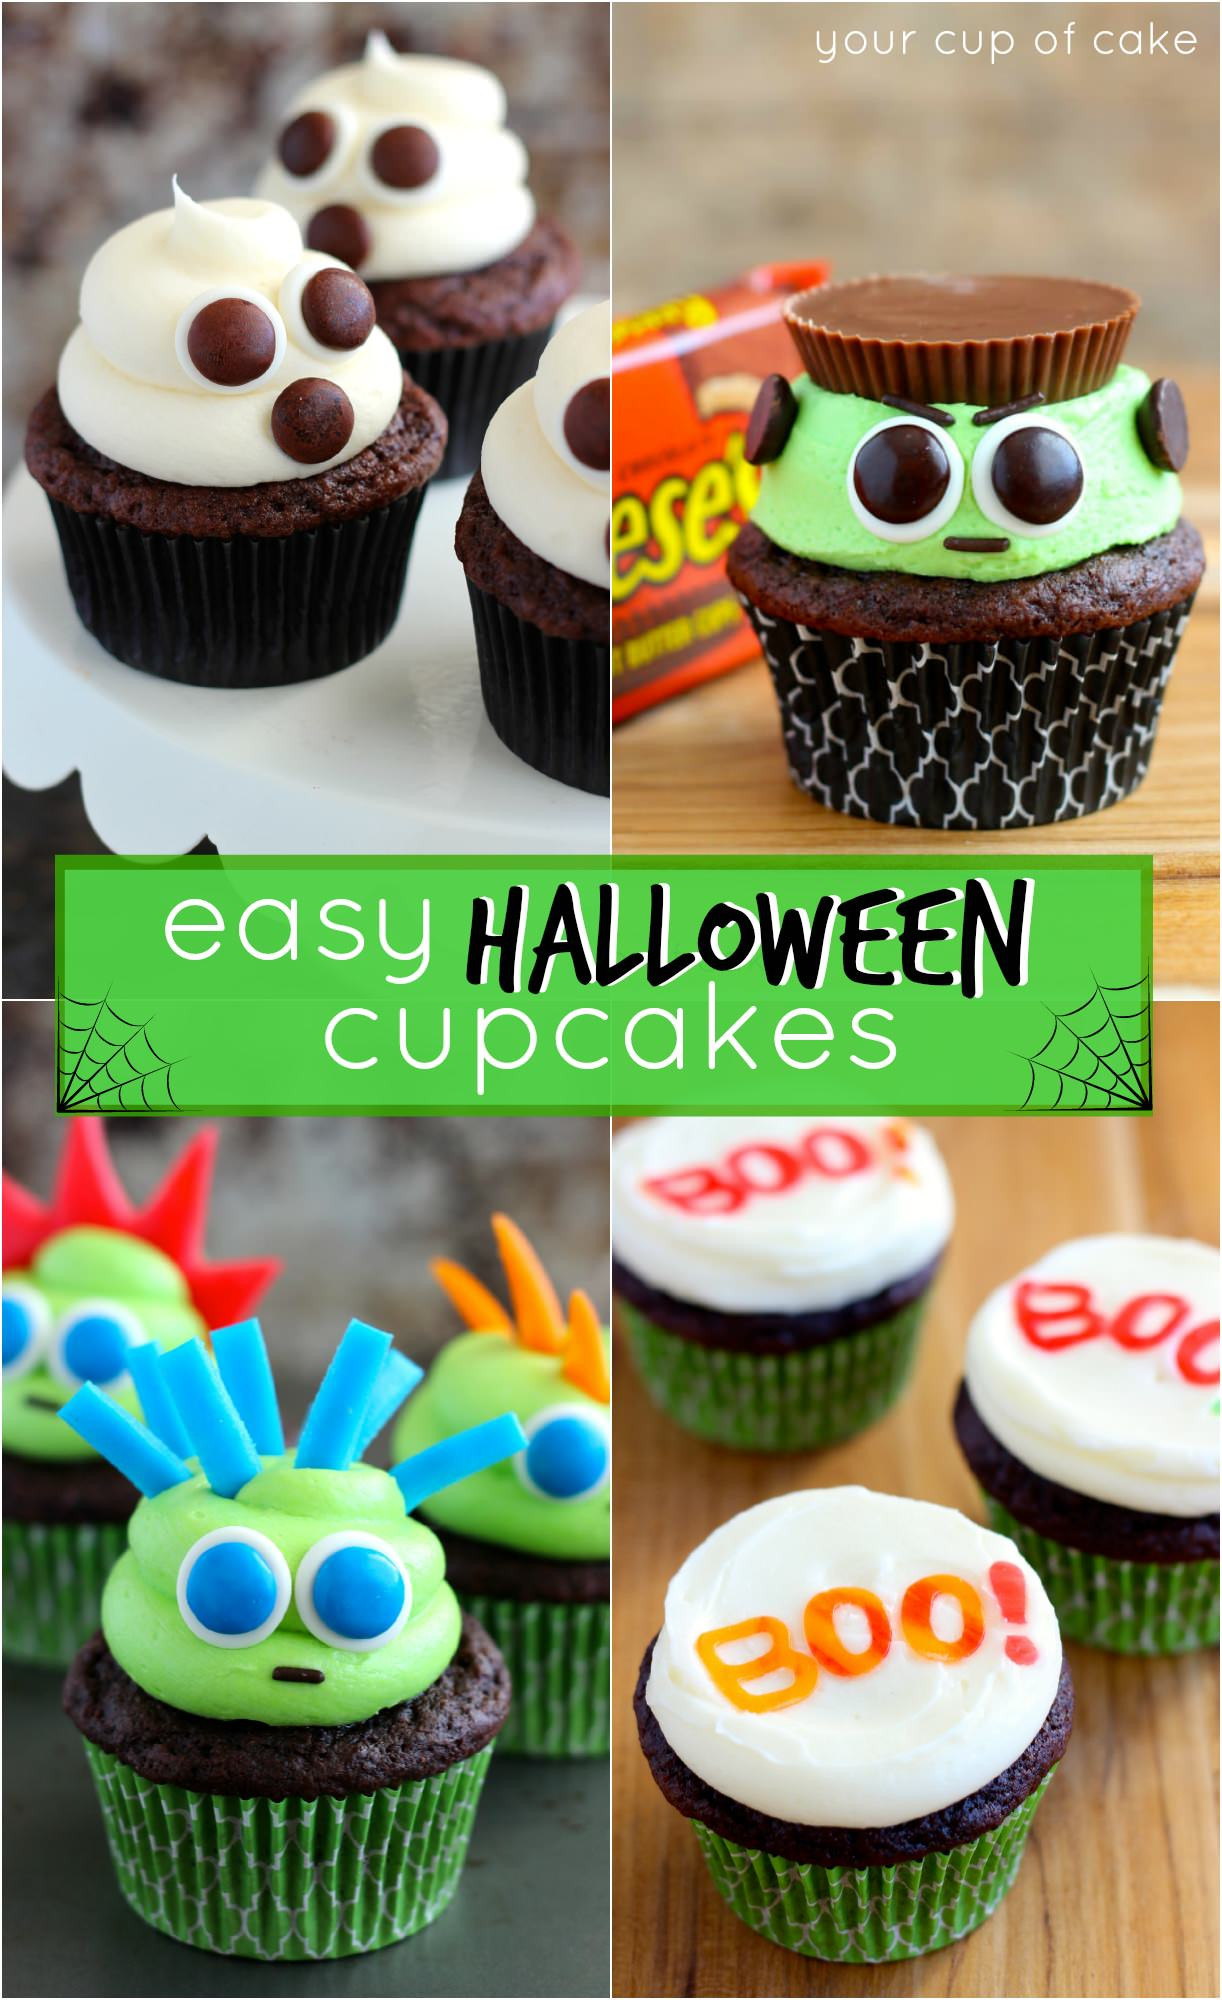 Halloween Cakes Ideas  Easy Halloween Cupcake Ideas Your Cup of Cake